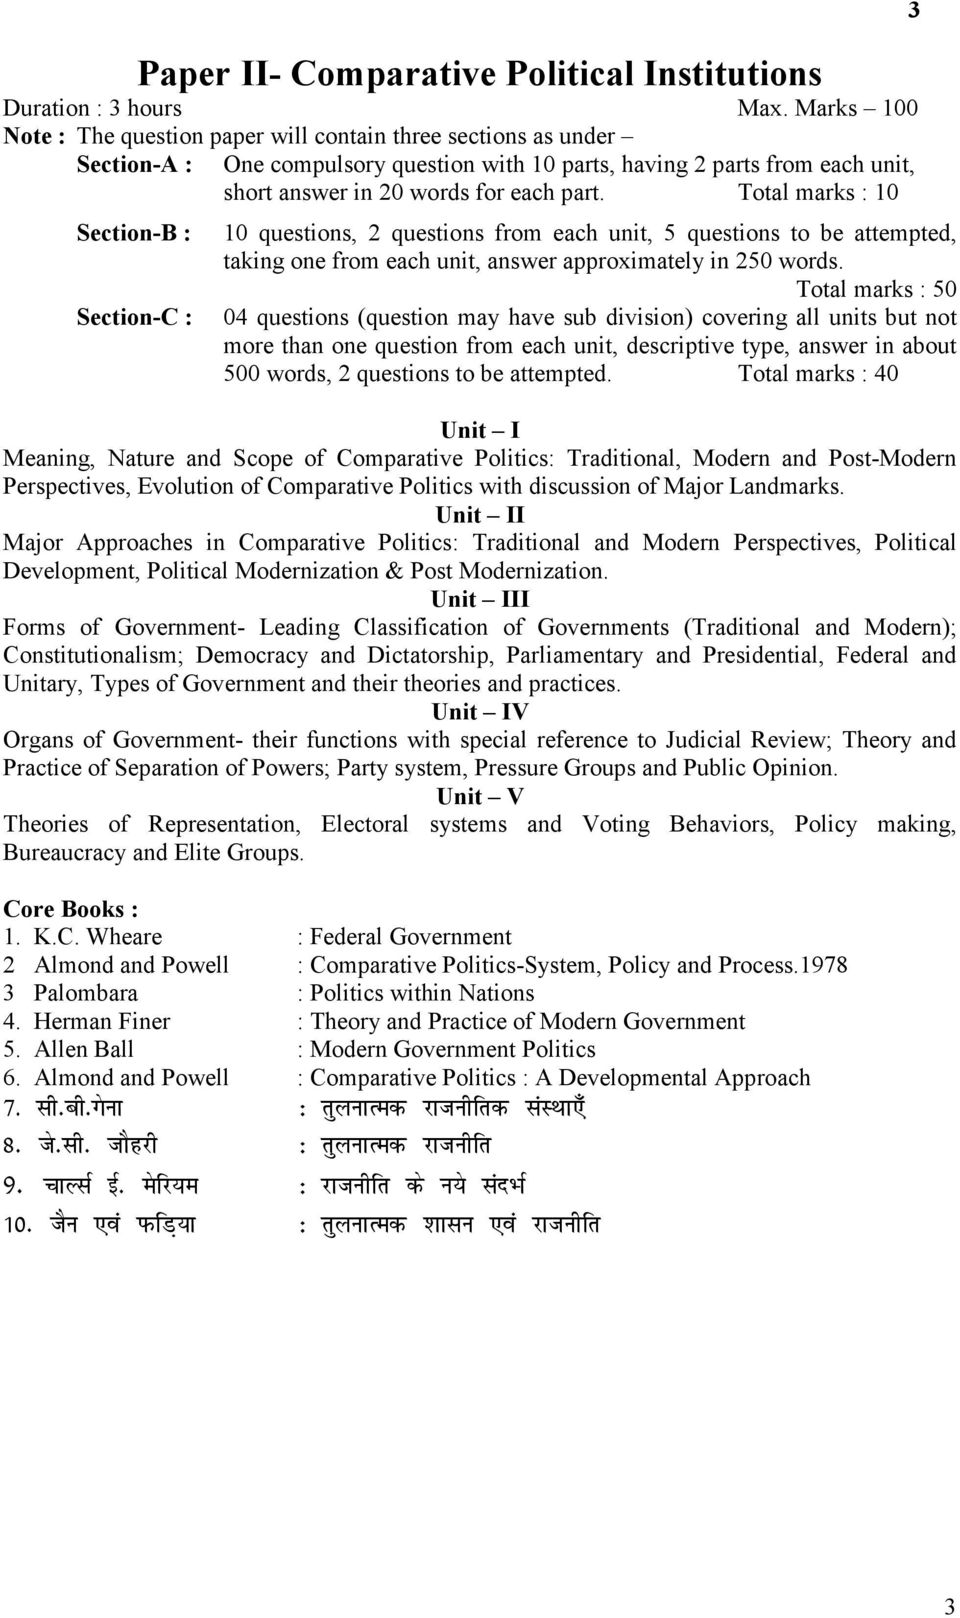 traditional approach in comparative politics